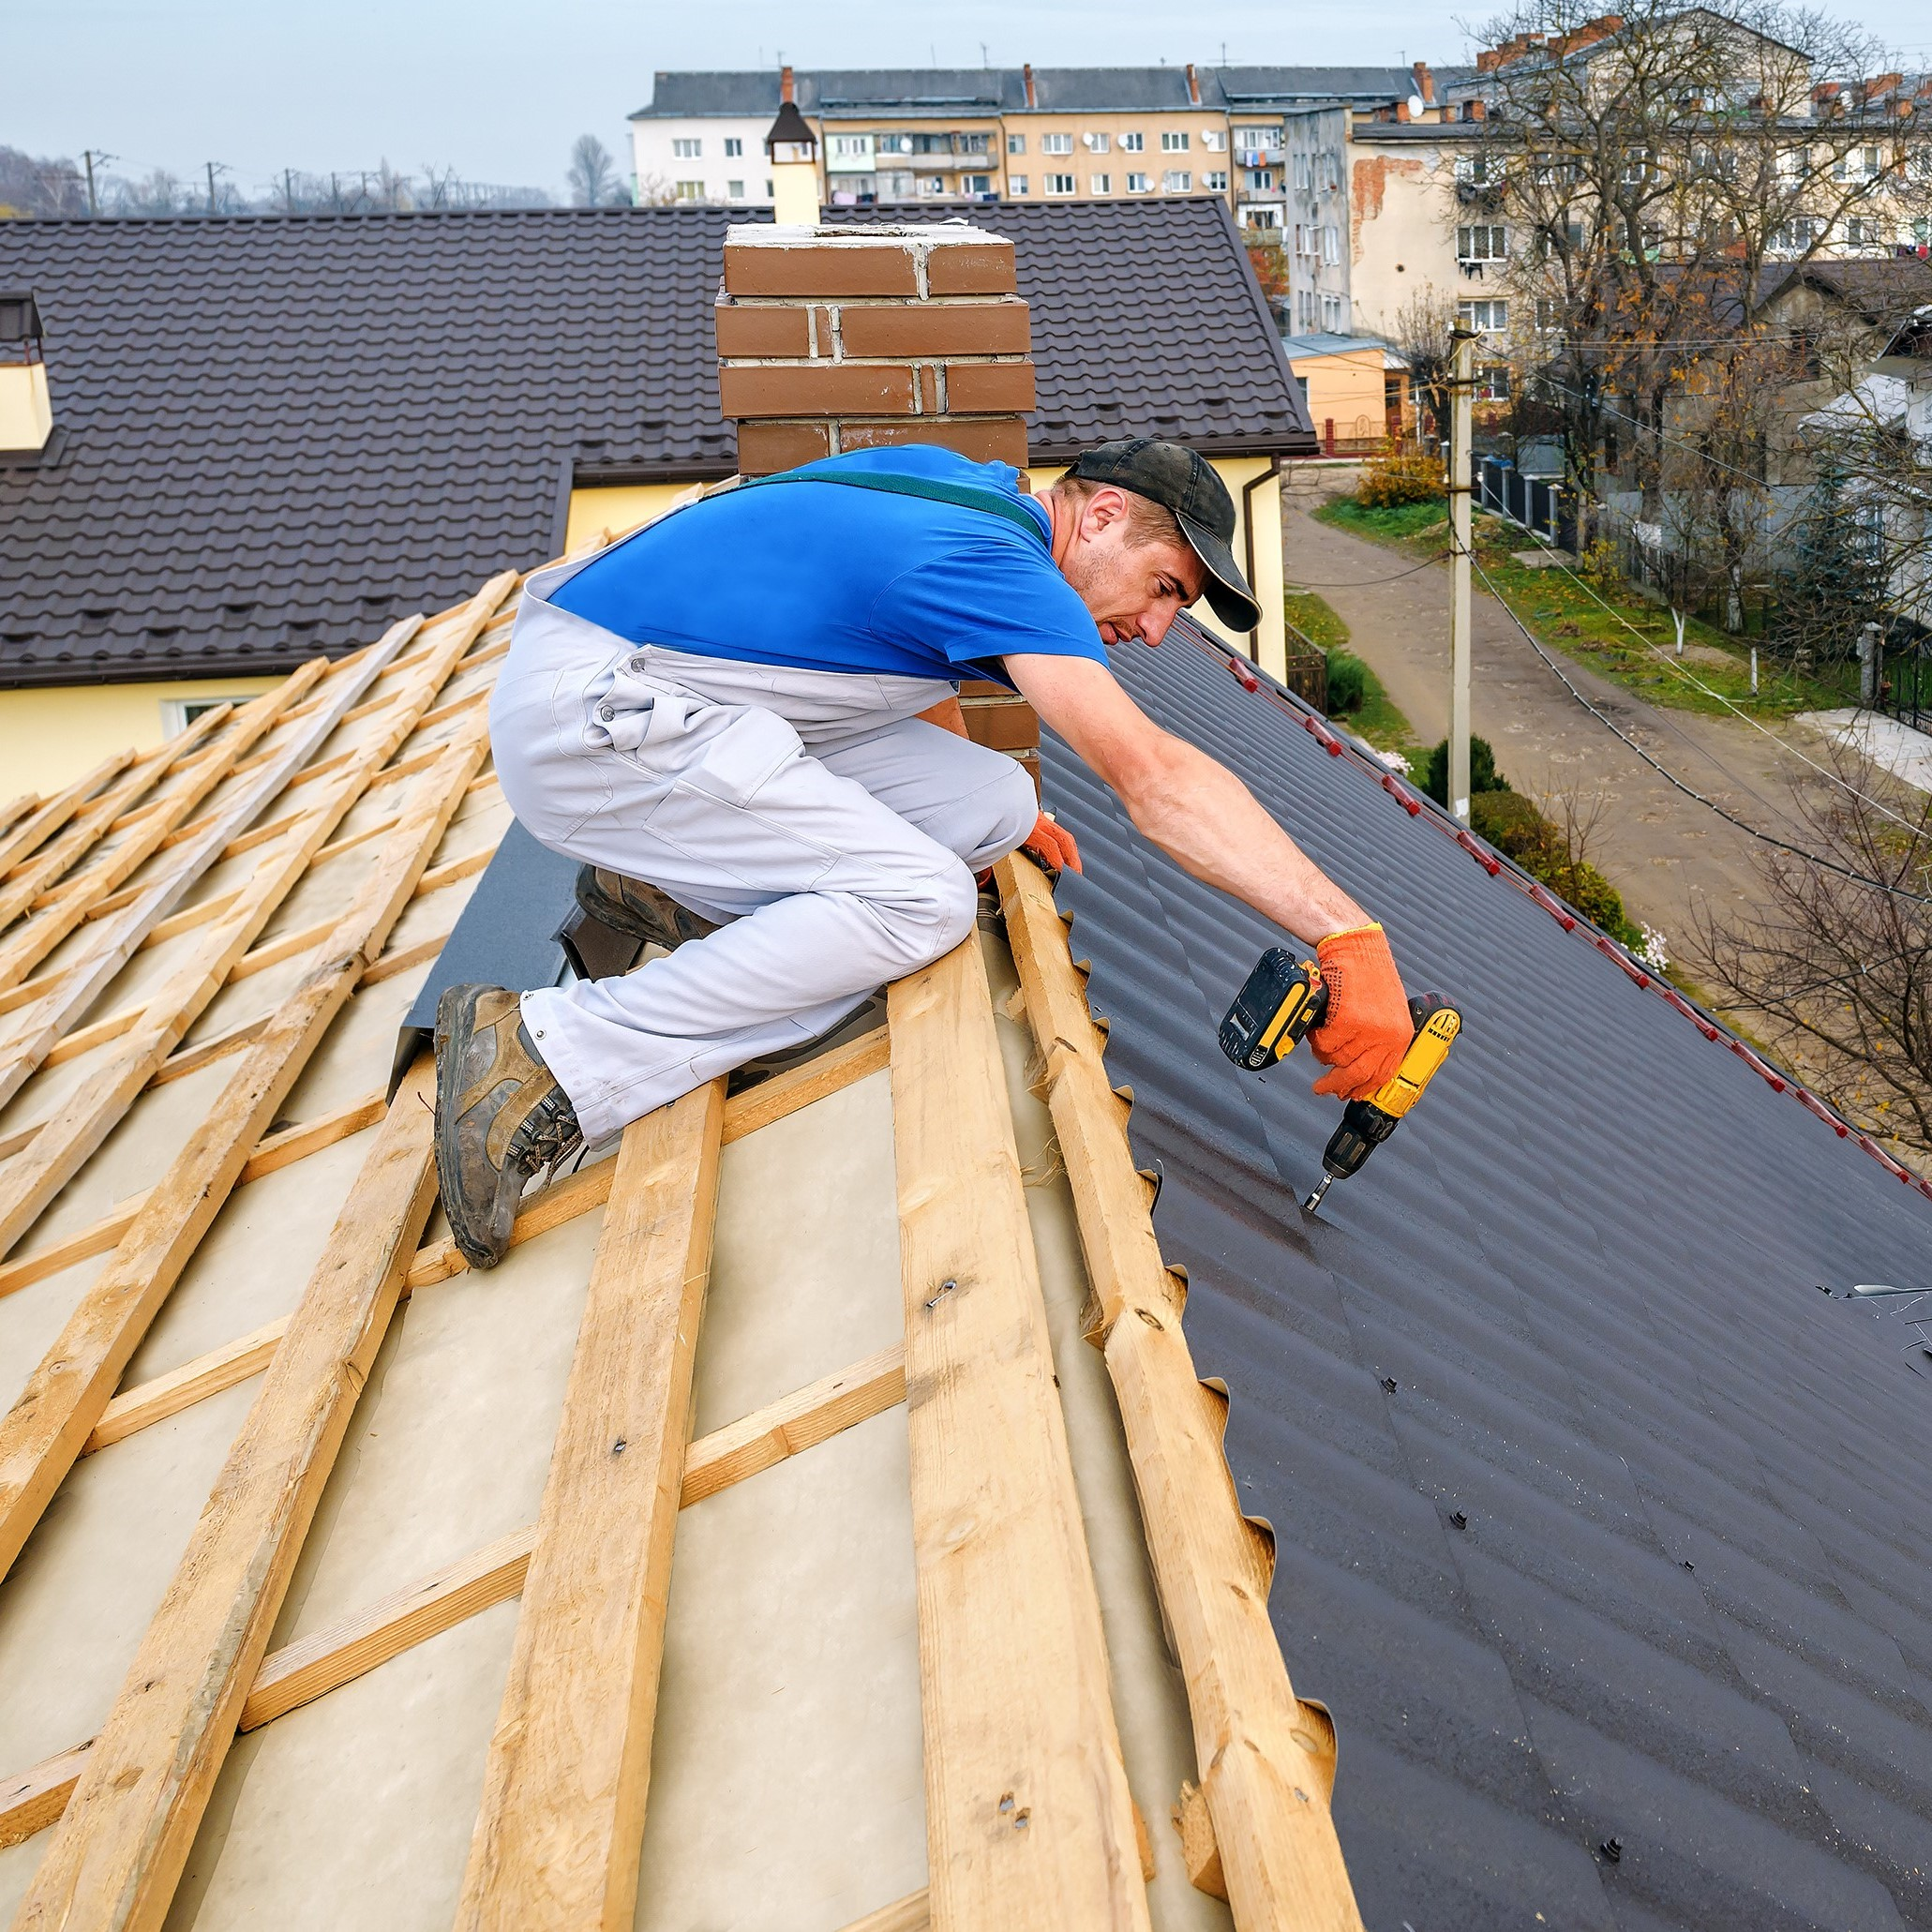 A roofer fixing a roof.